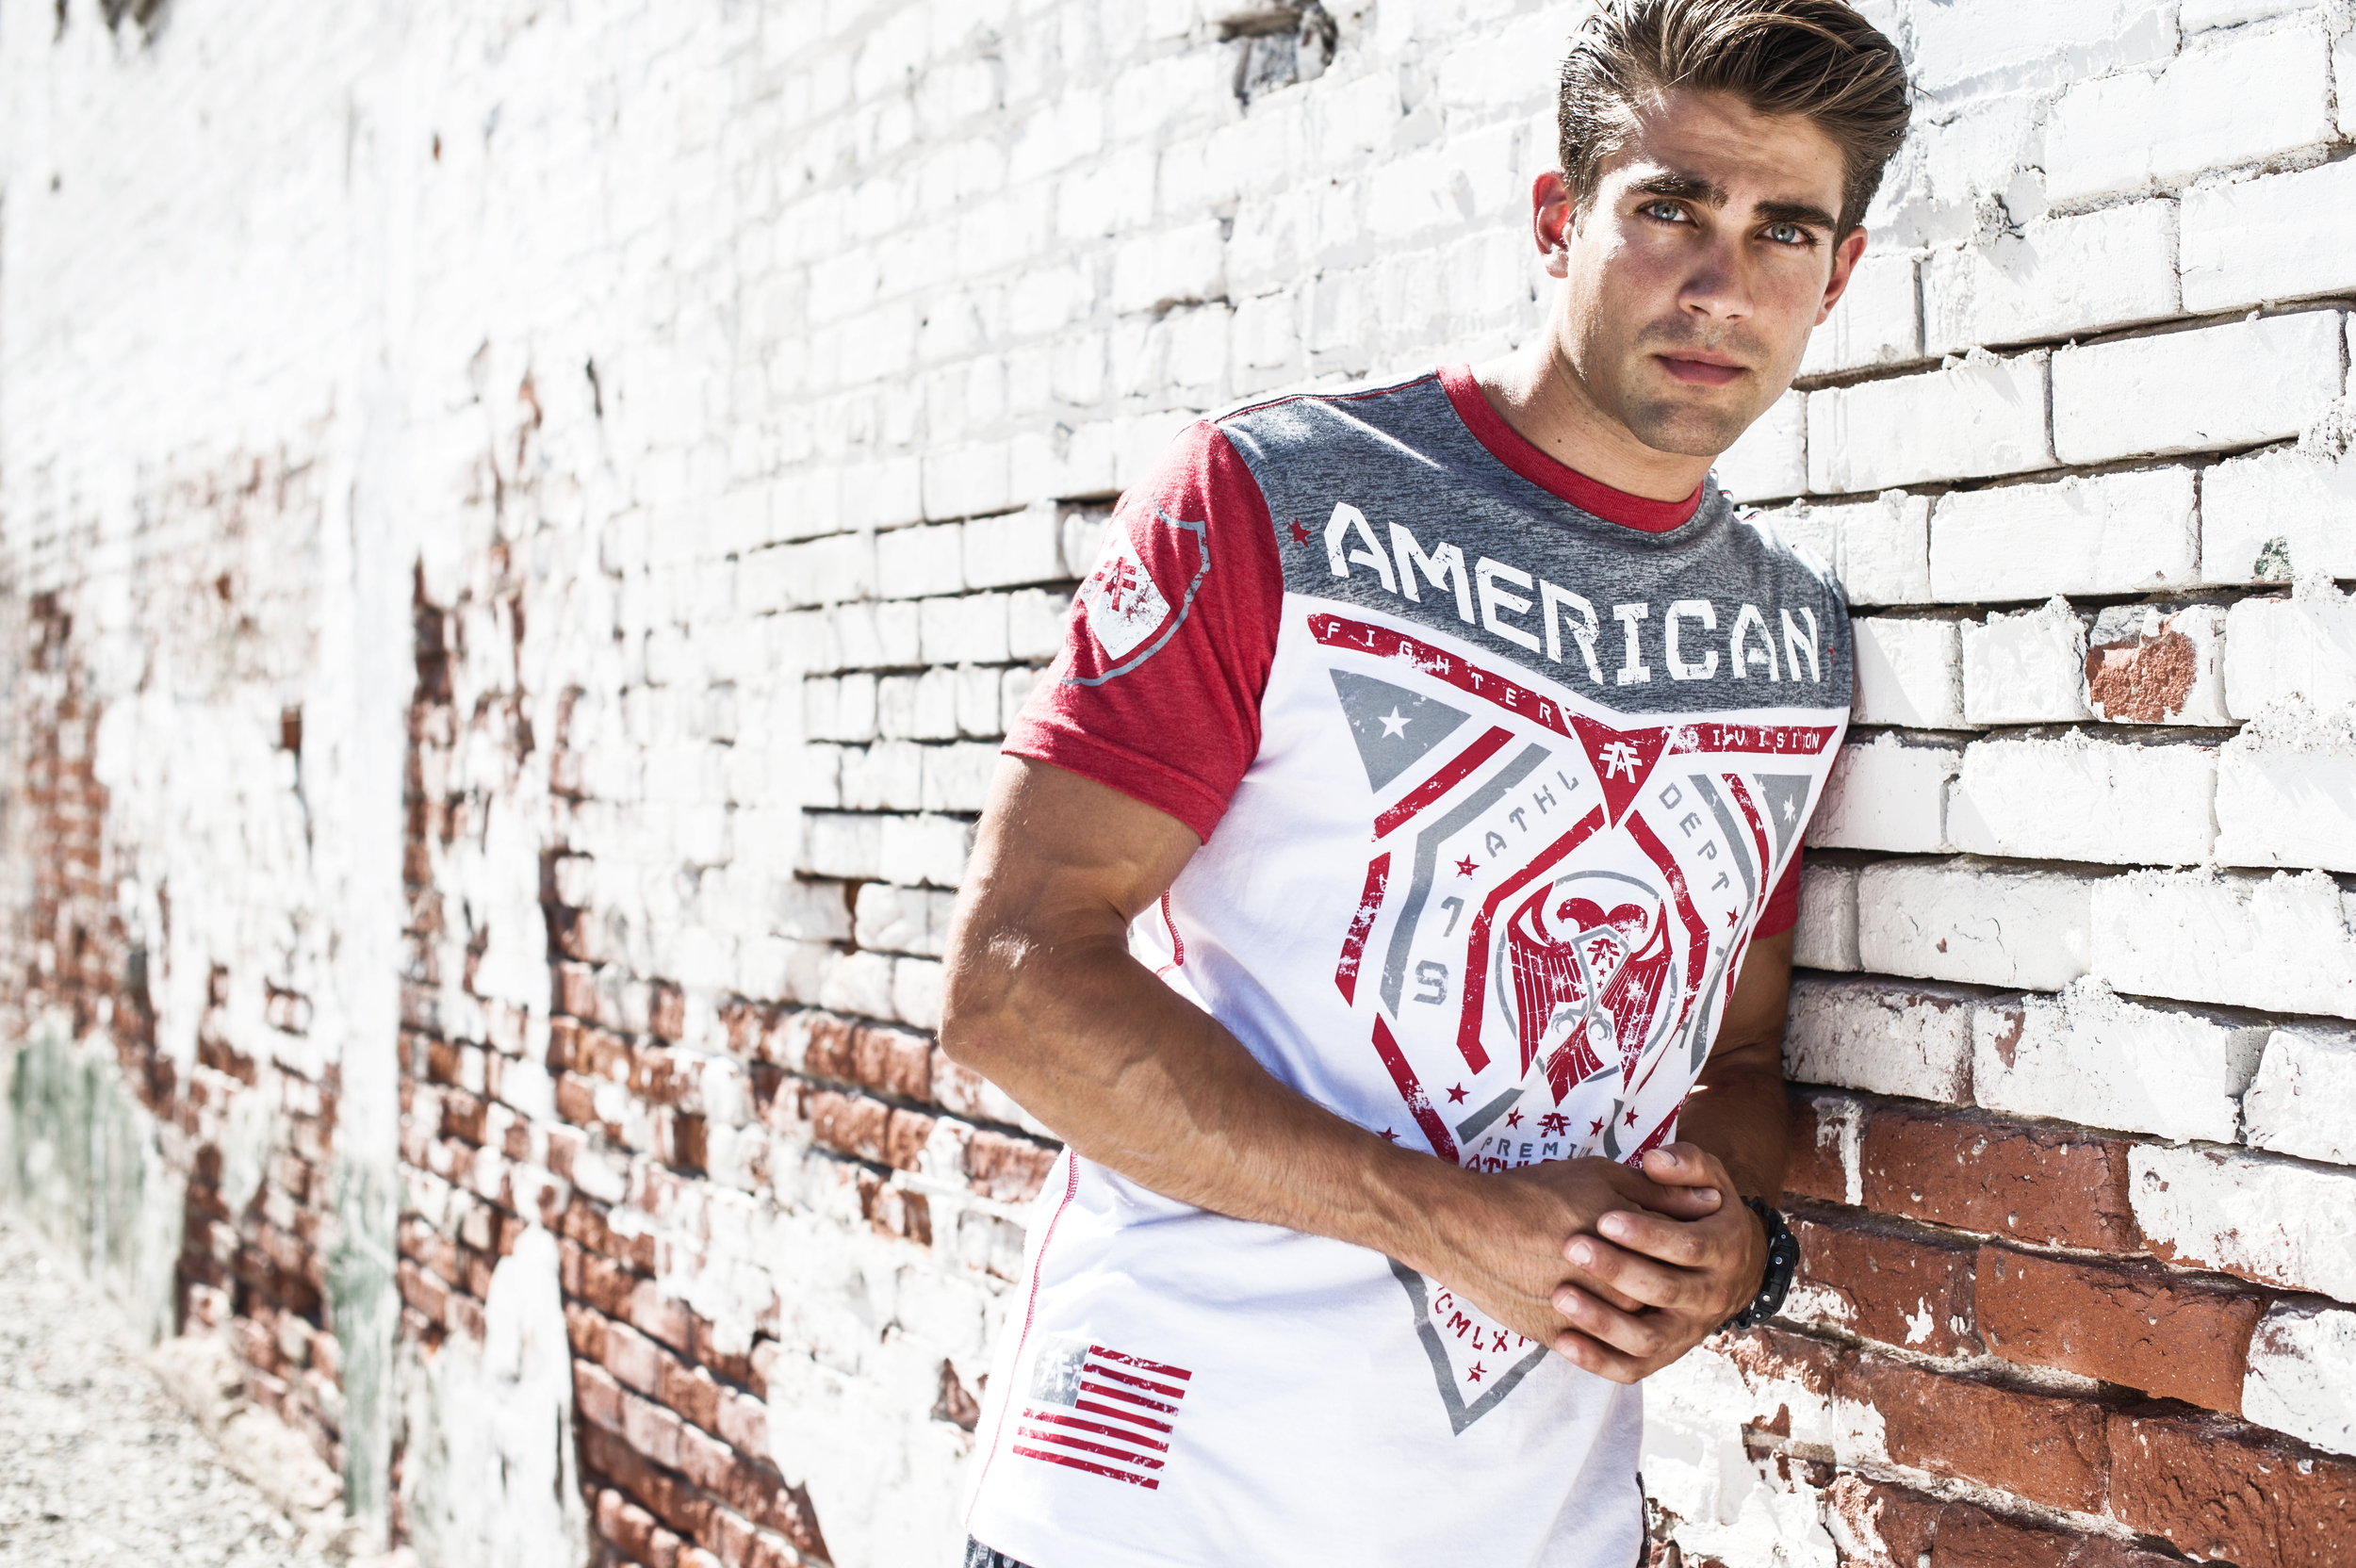 American Fighter Spring Lookbook 005.jpg